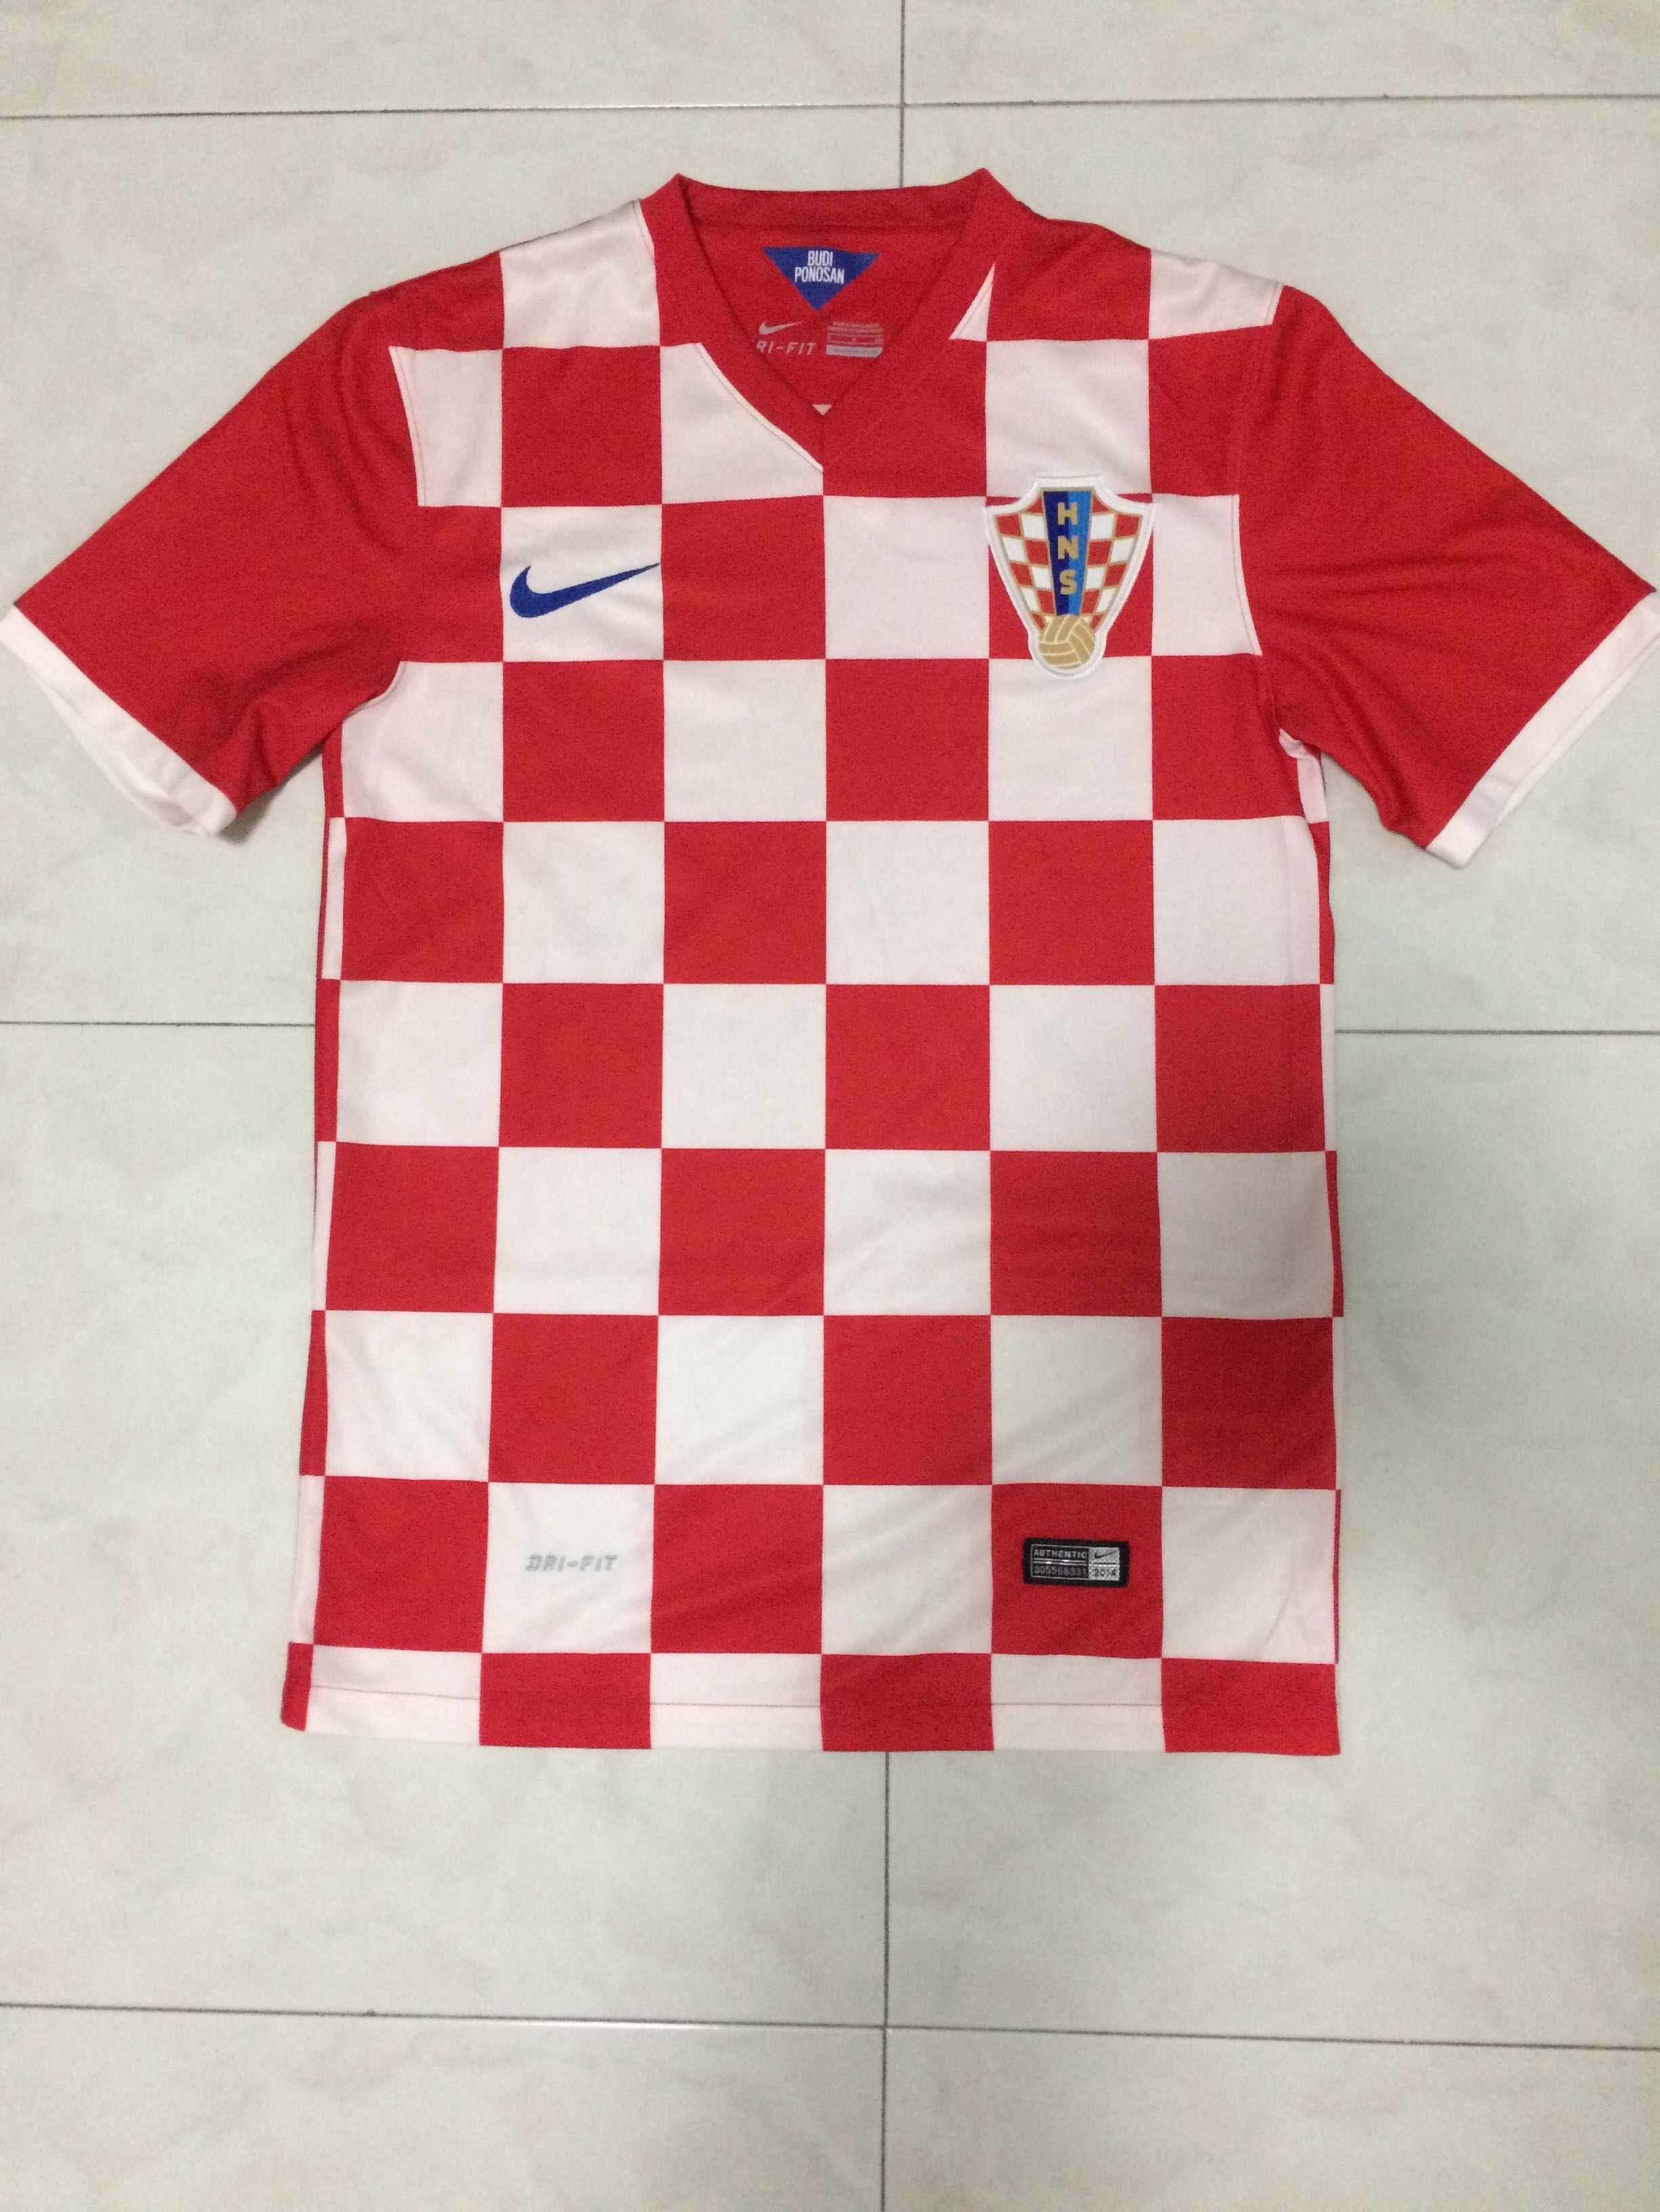 629022941 Authentic Nike Croatia World Cup Football Home Jersey